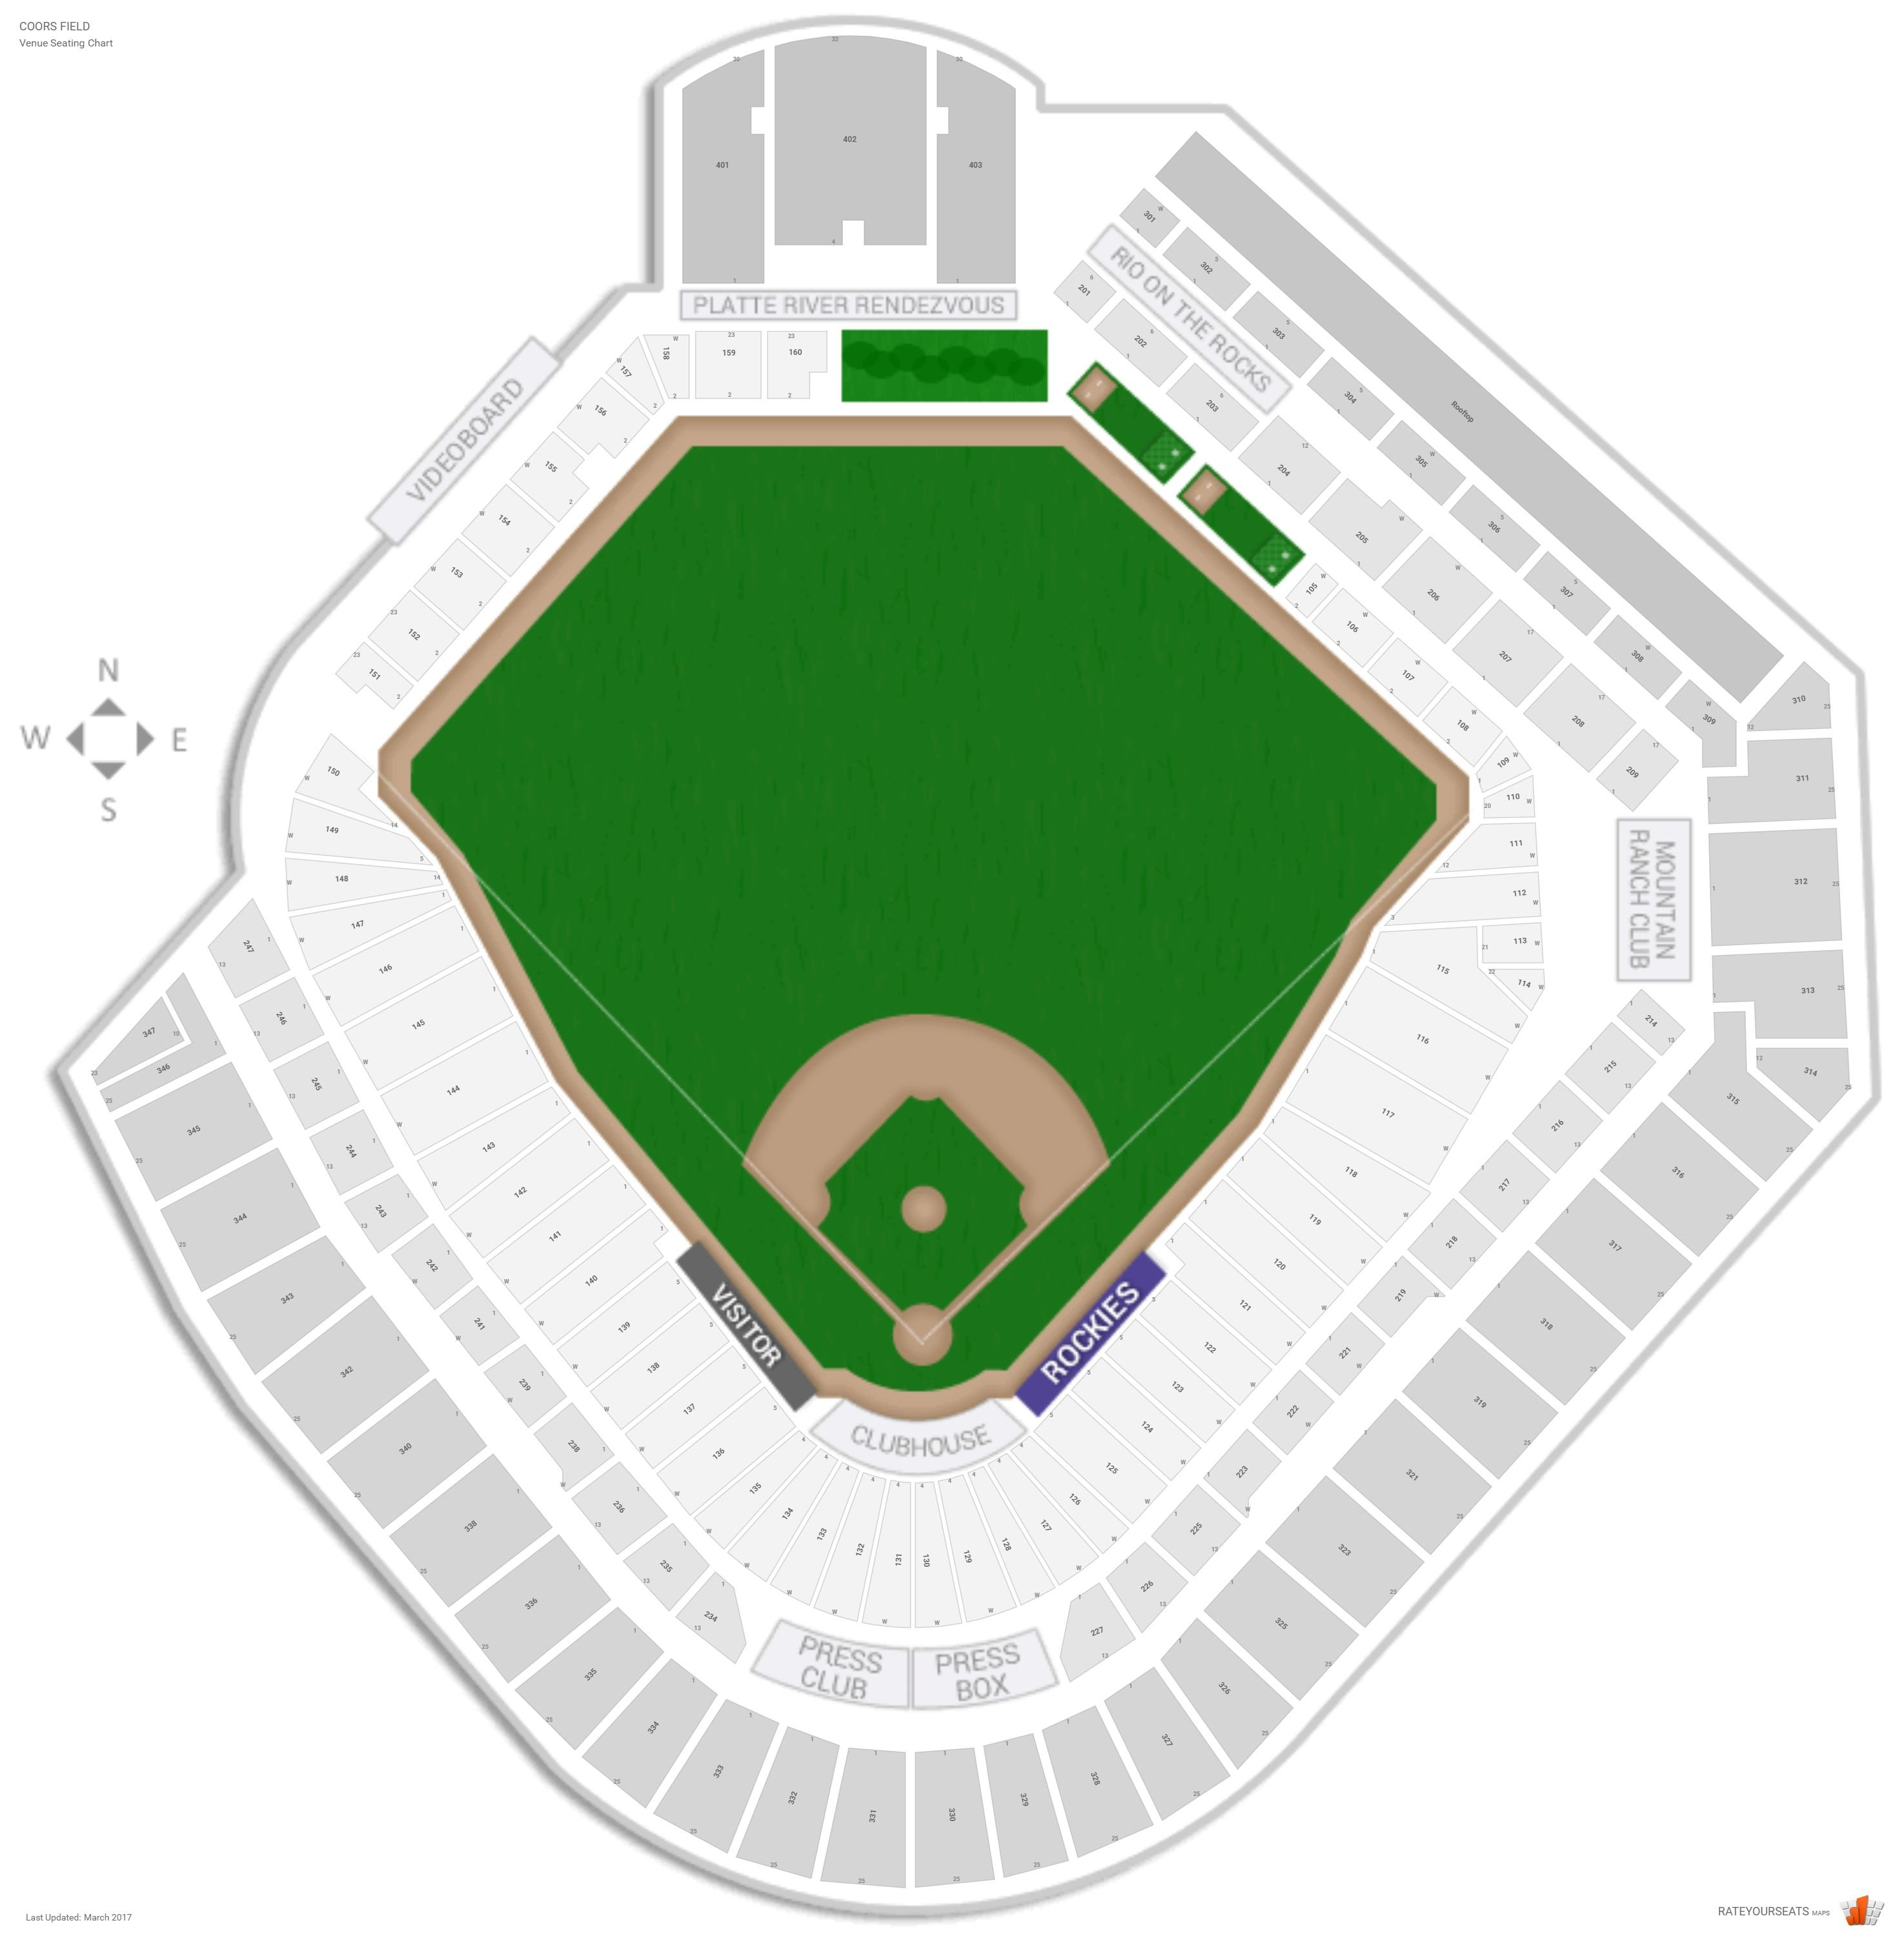 Colorado rockies seating guide coors field rateyourseats com